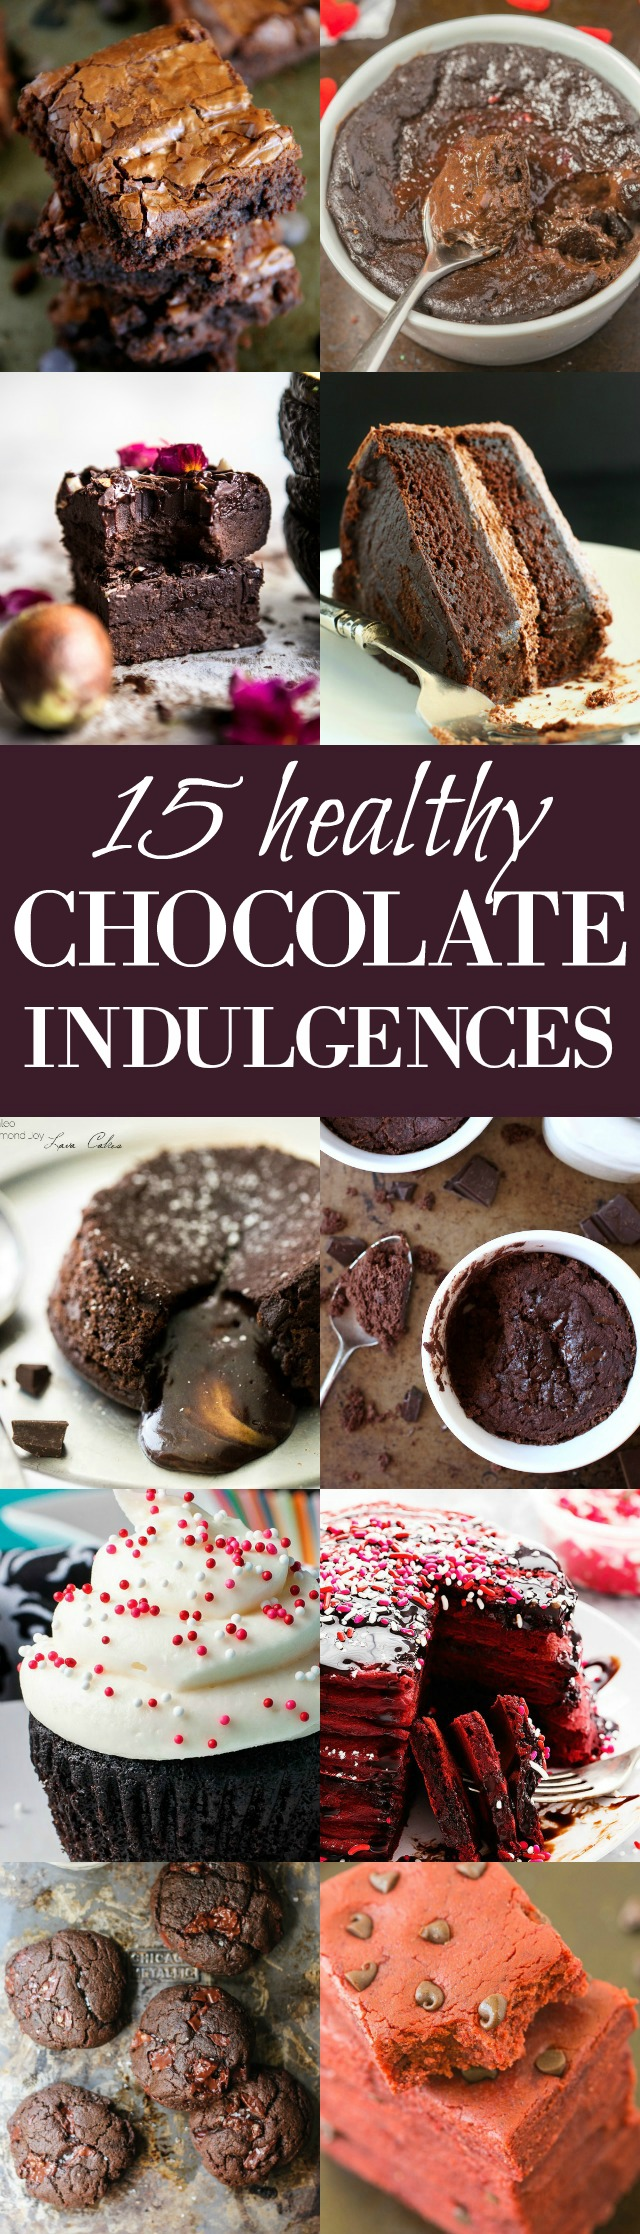 Satisfy those cocoa cravings with these chocolate indulgences that you'd never believe are healthy! | runningwithspoons.com